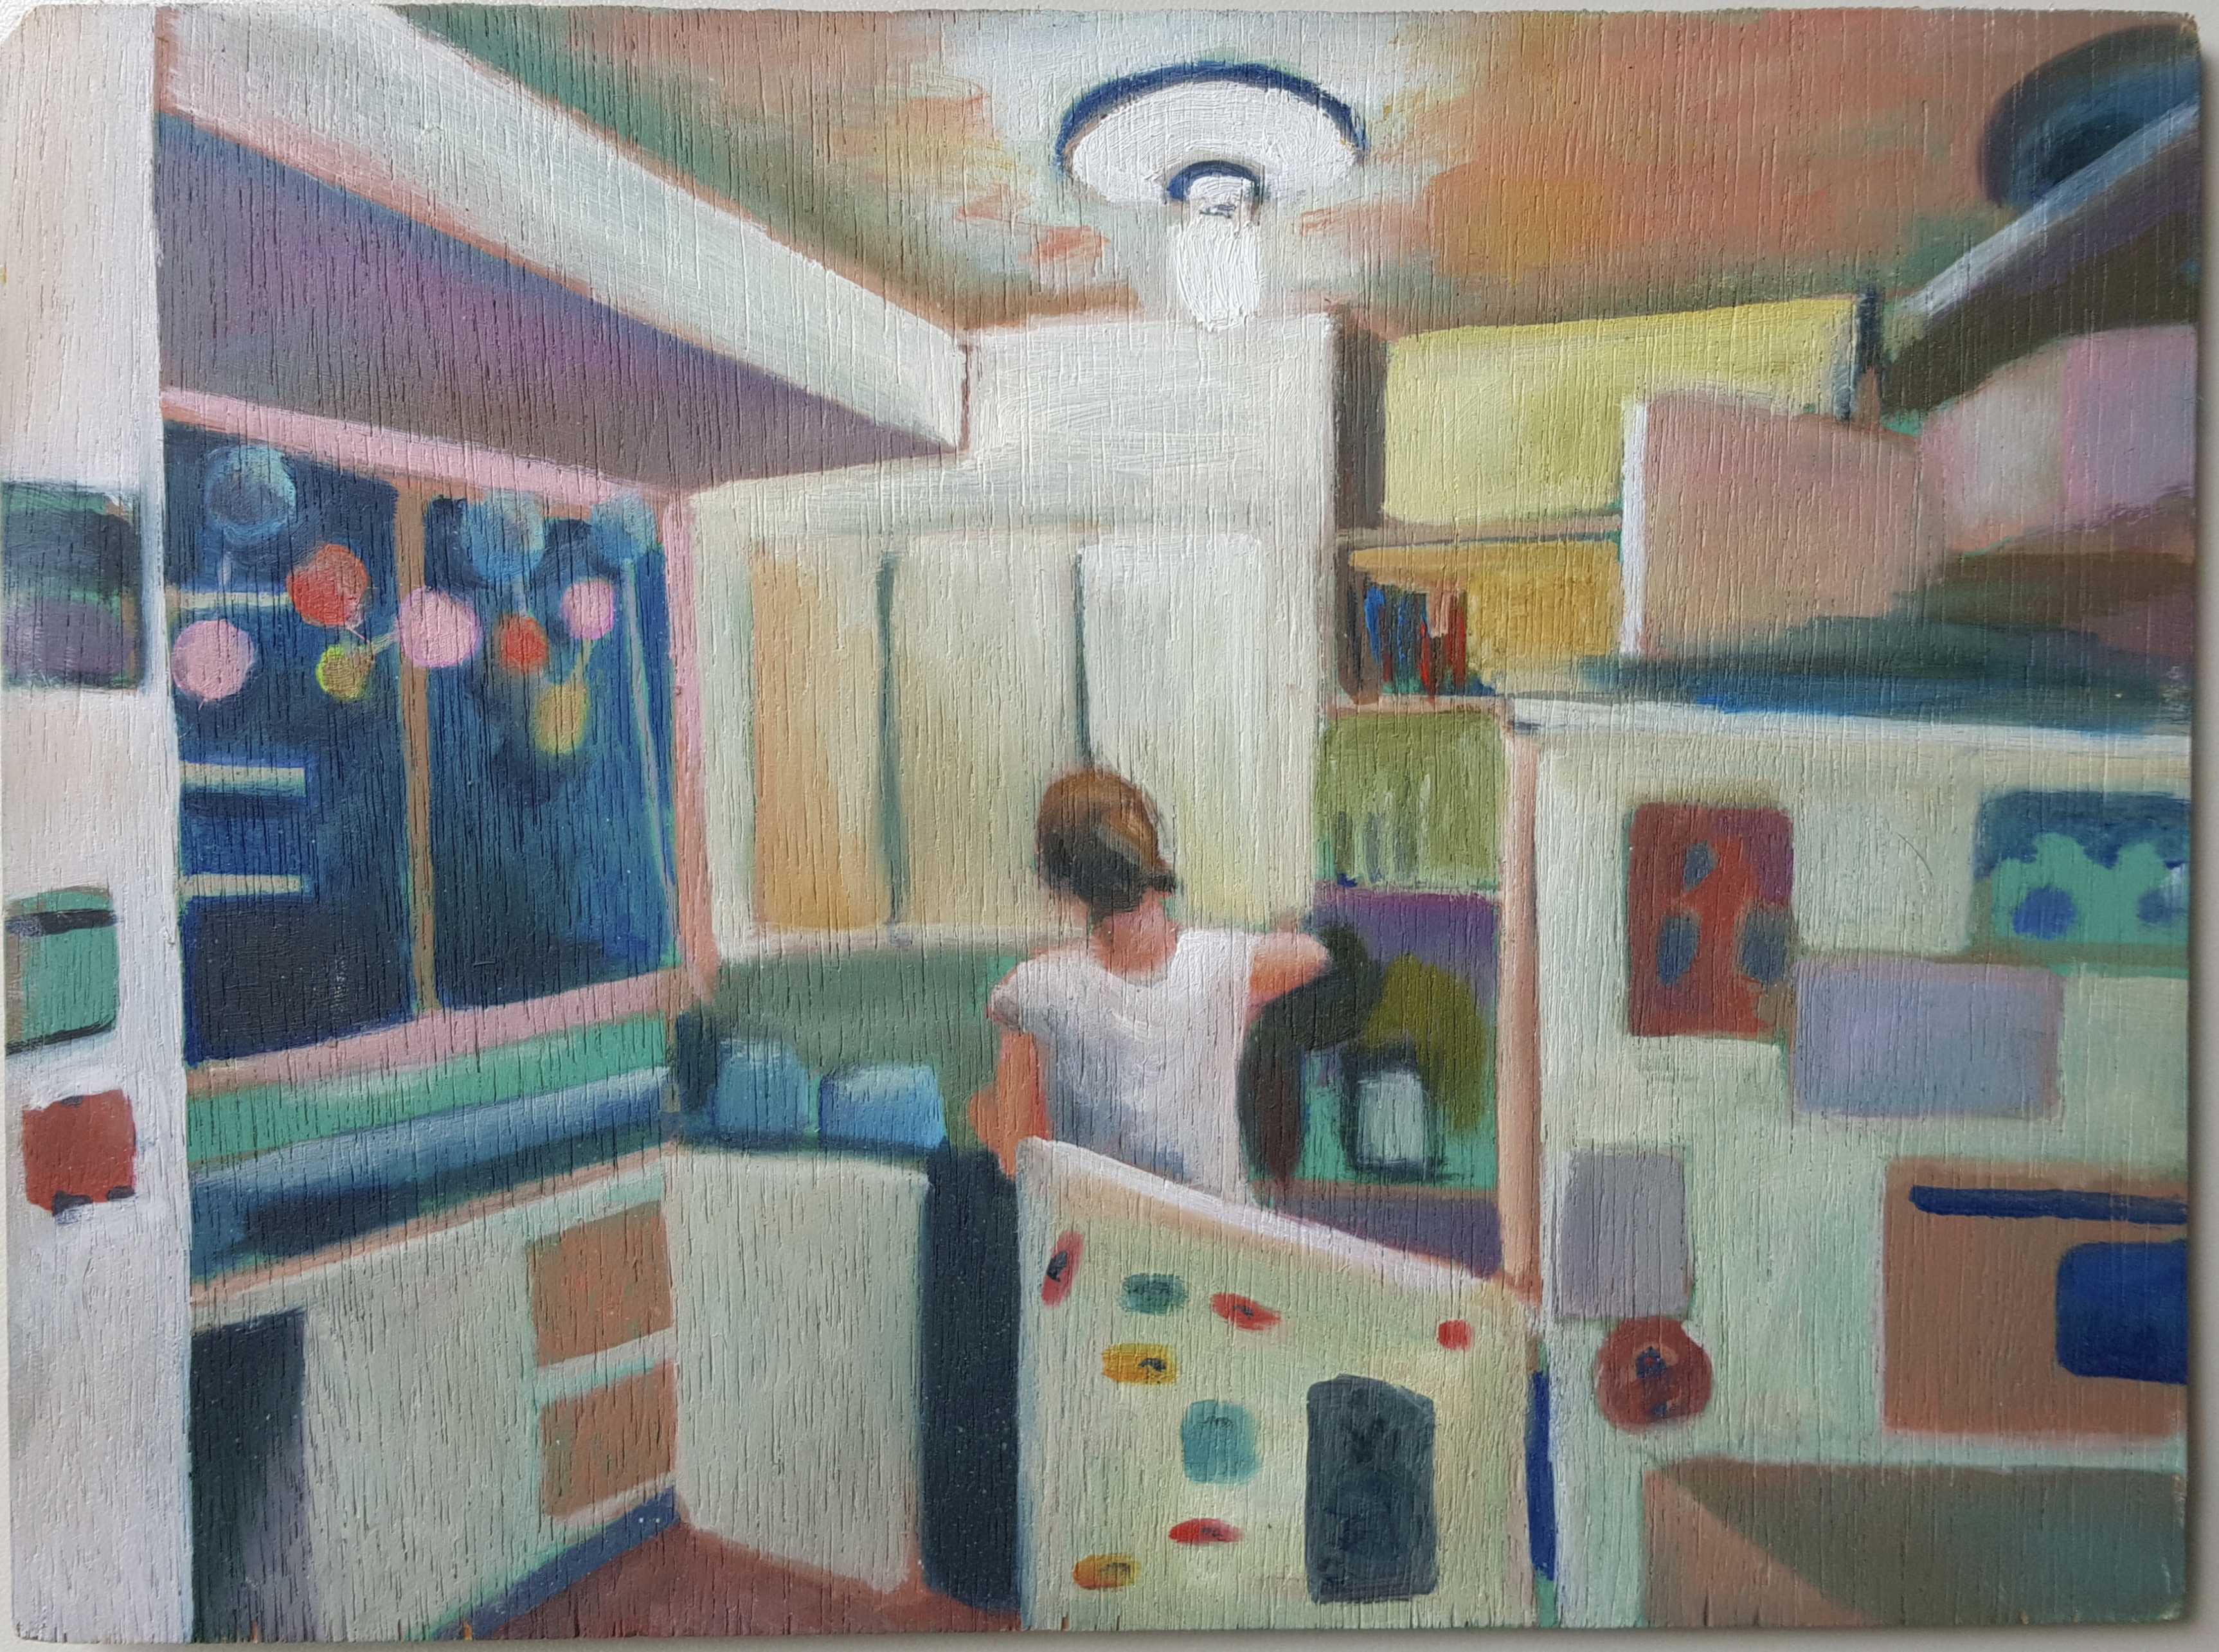 Hearn, N (2011). Kitchen